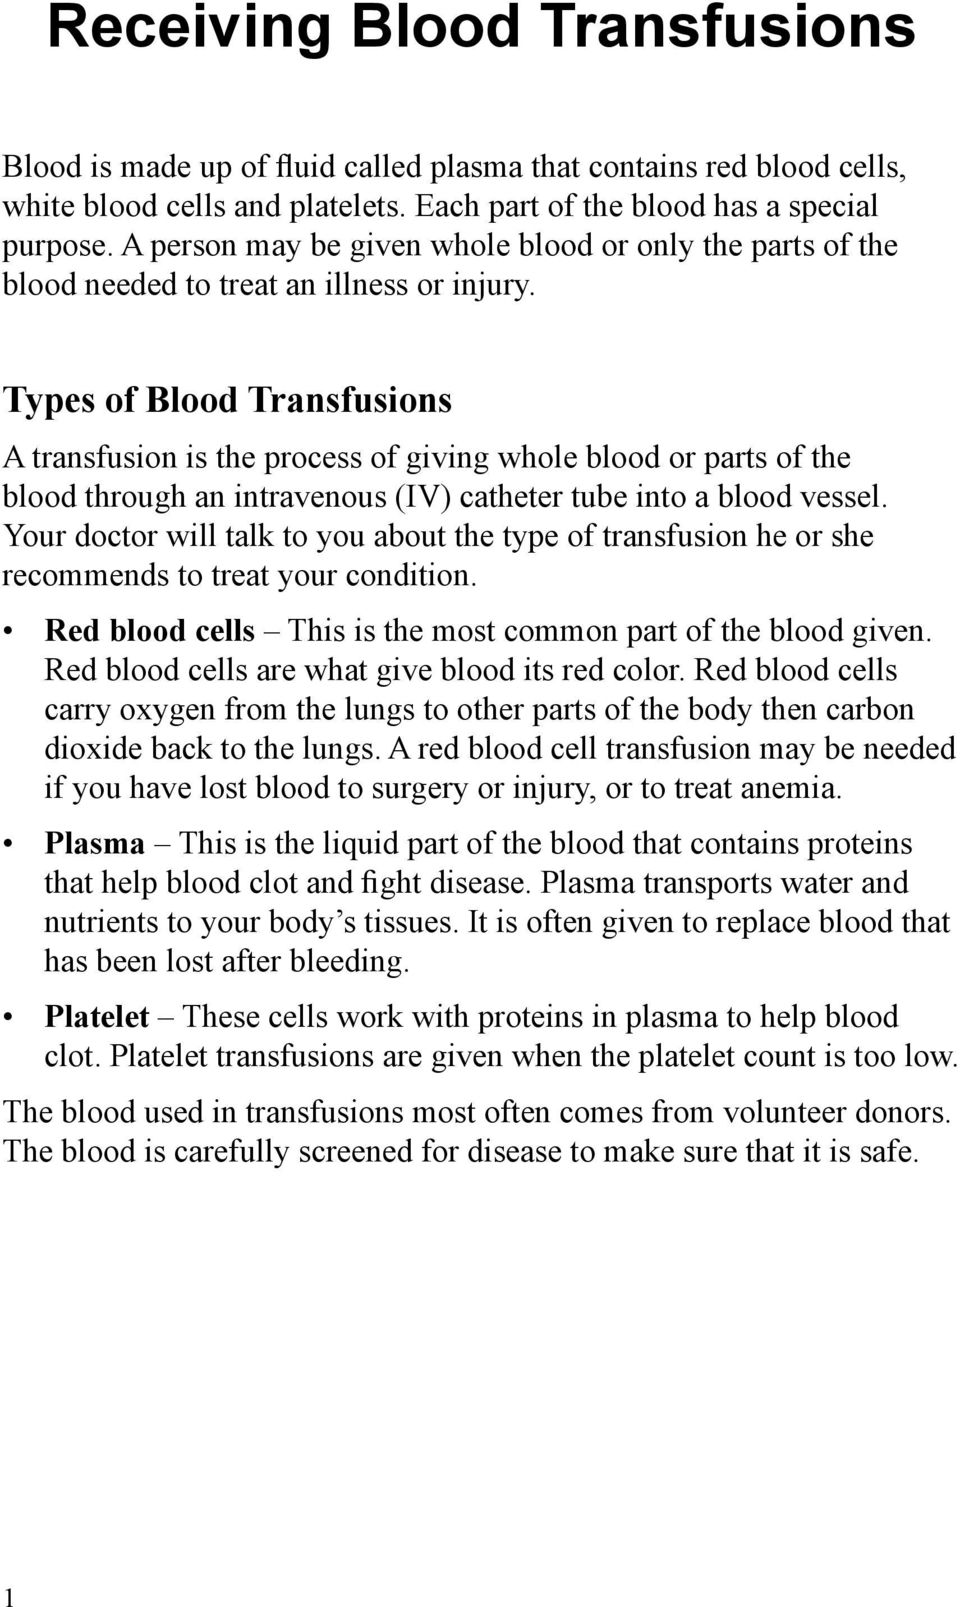 Types of Blood Transfusions A transfusion is the process of giving whole blood or parts of the blood through an intravenous (IV) catheter tube into a blood vessel.